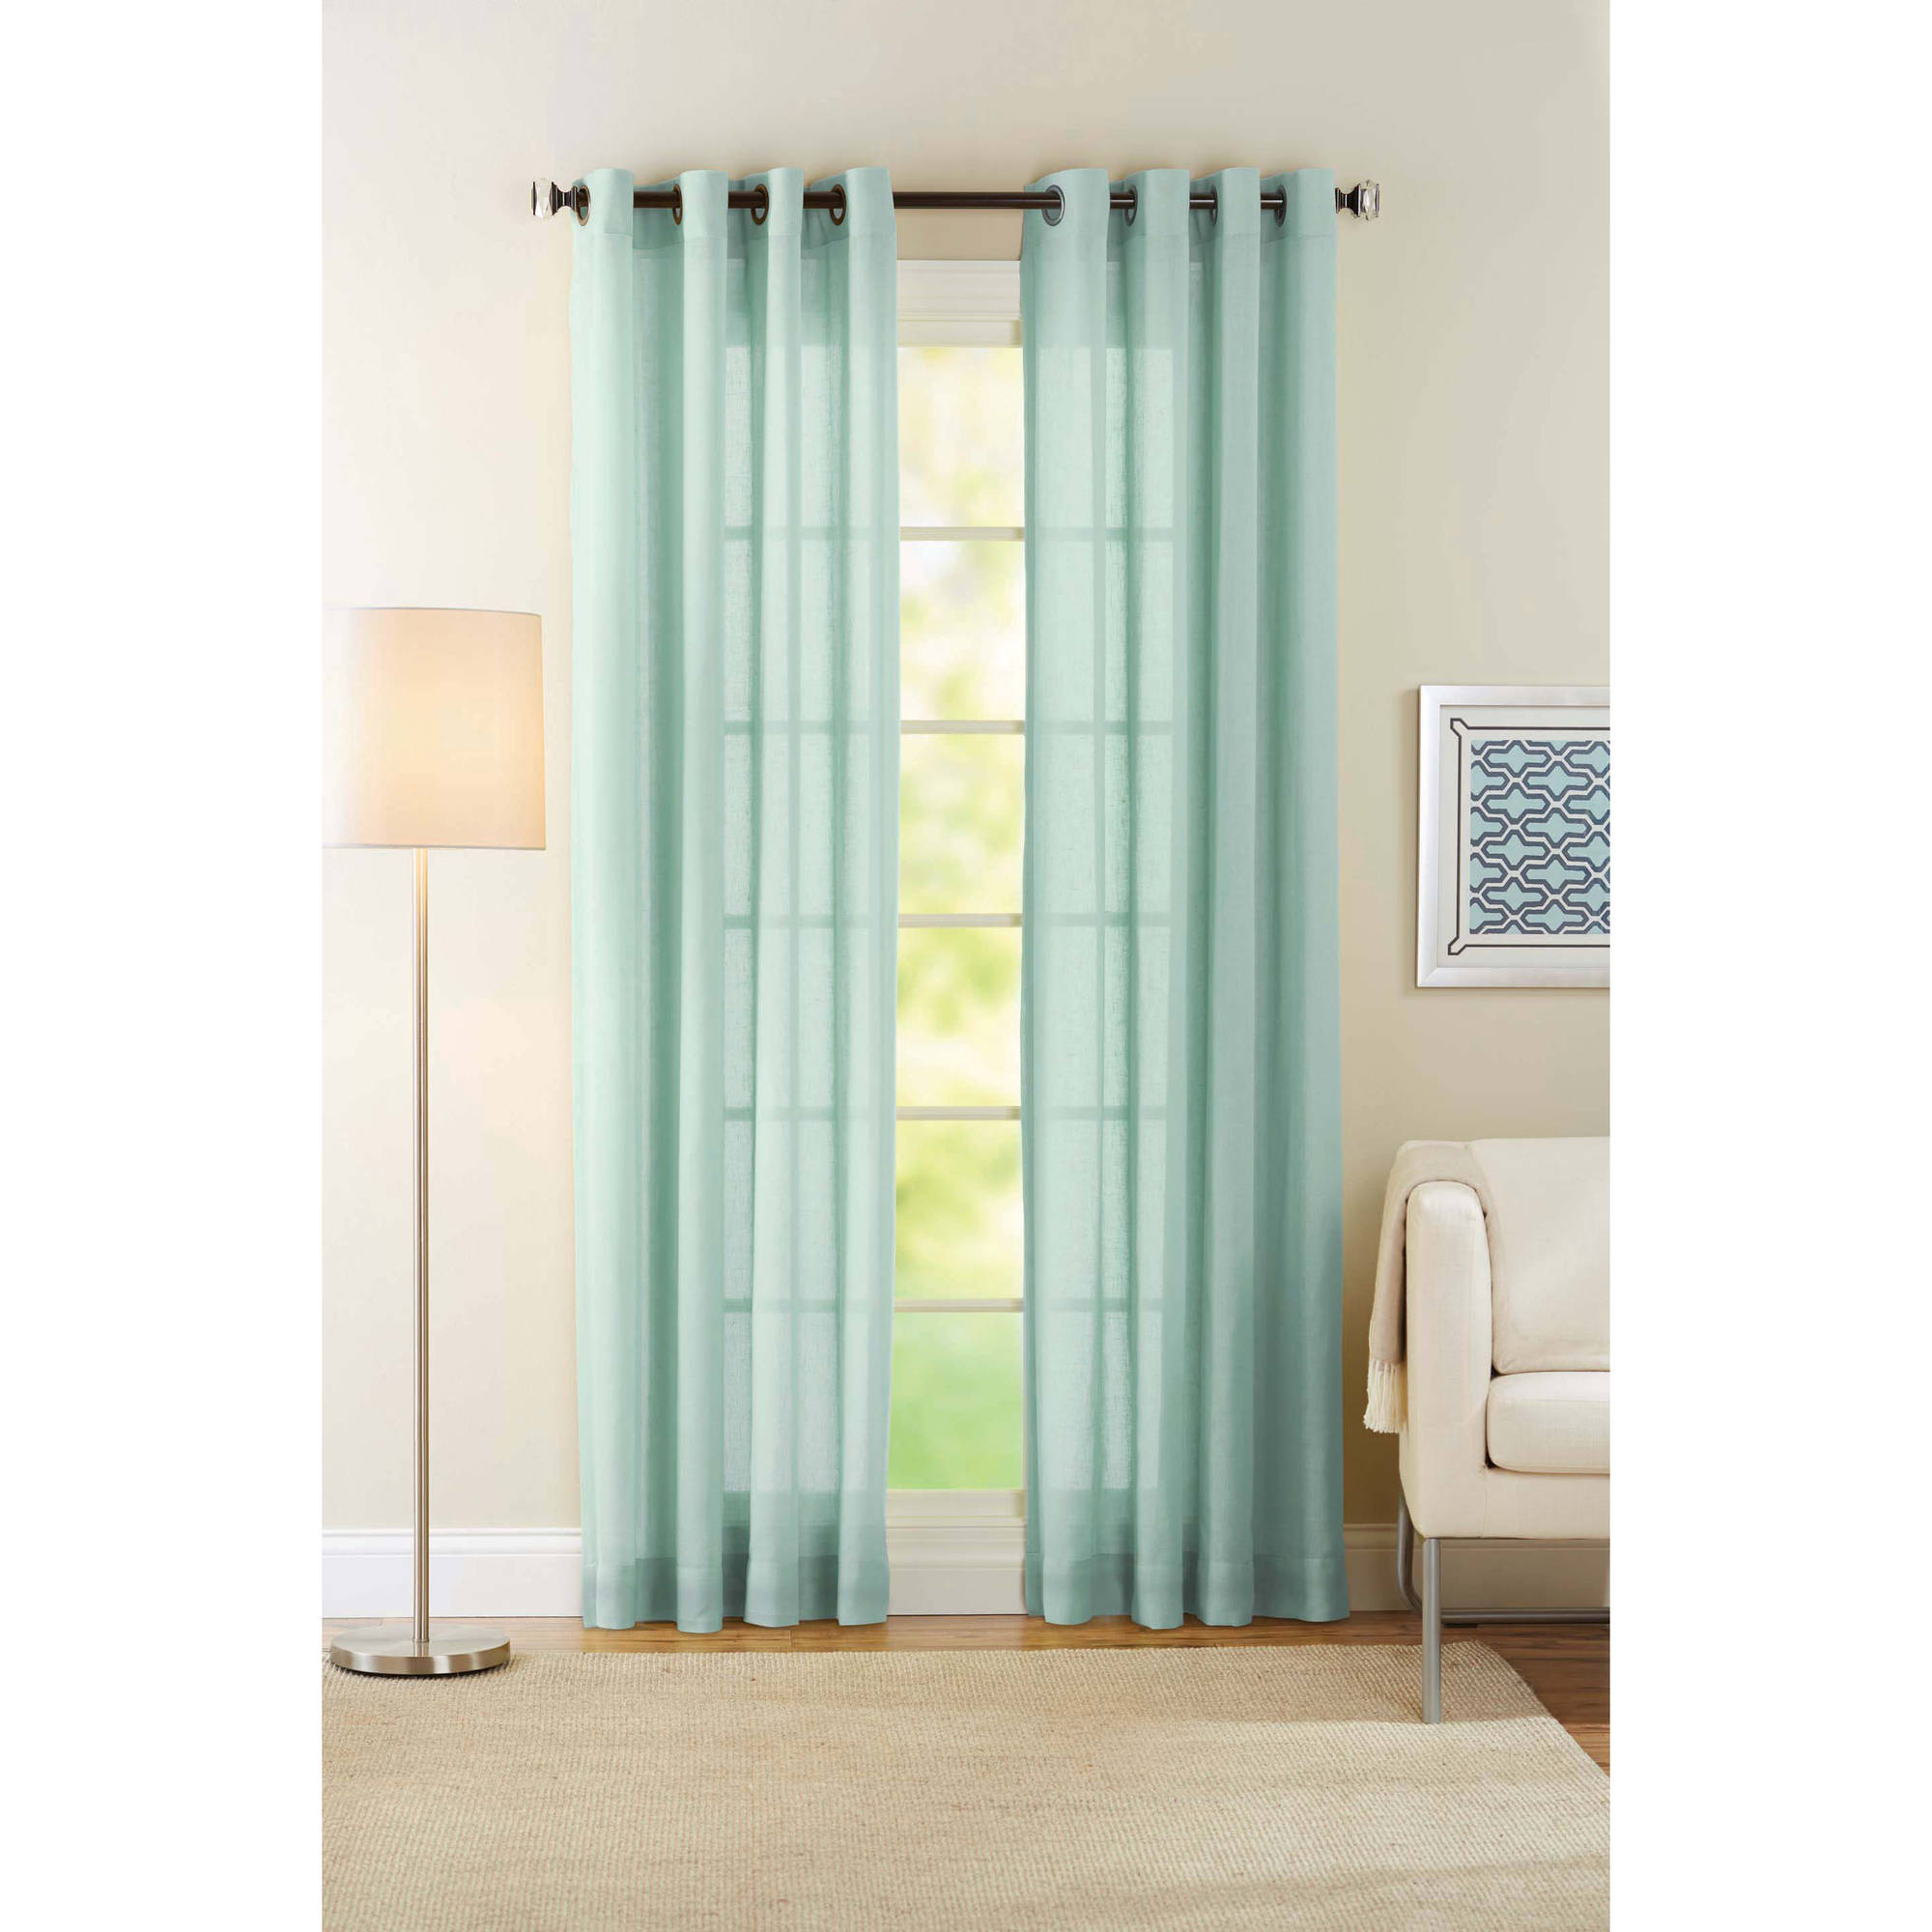 Better Homes and Gardens Semi-Sheer Polyester Curtain Panel